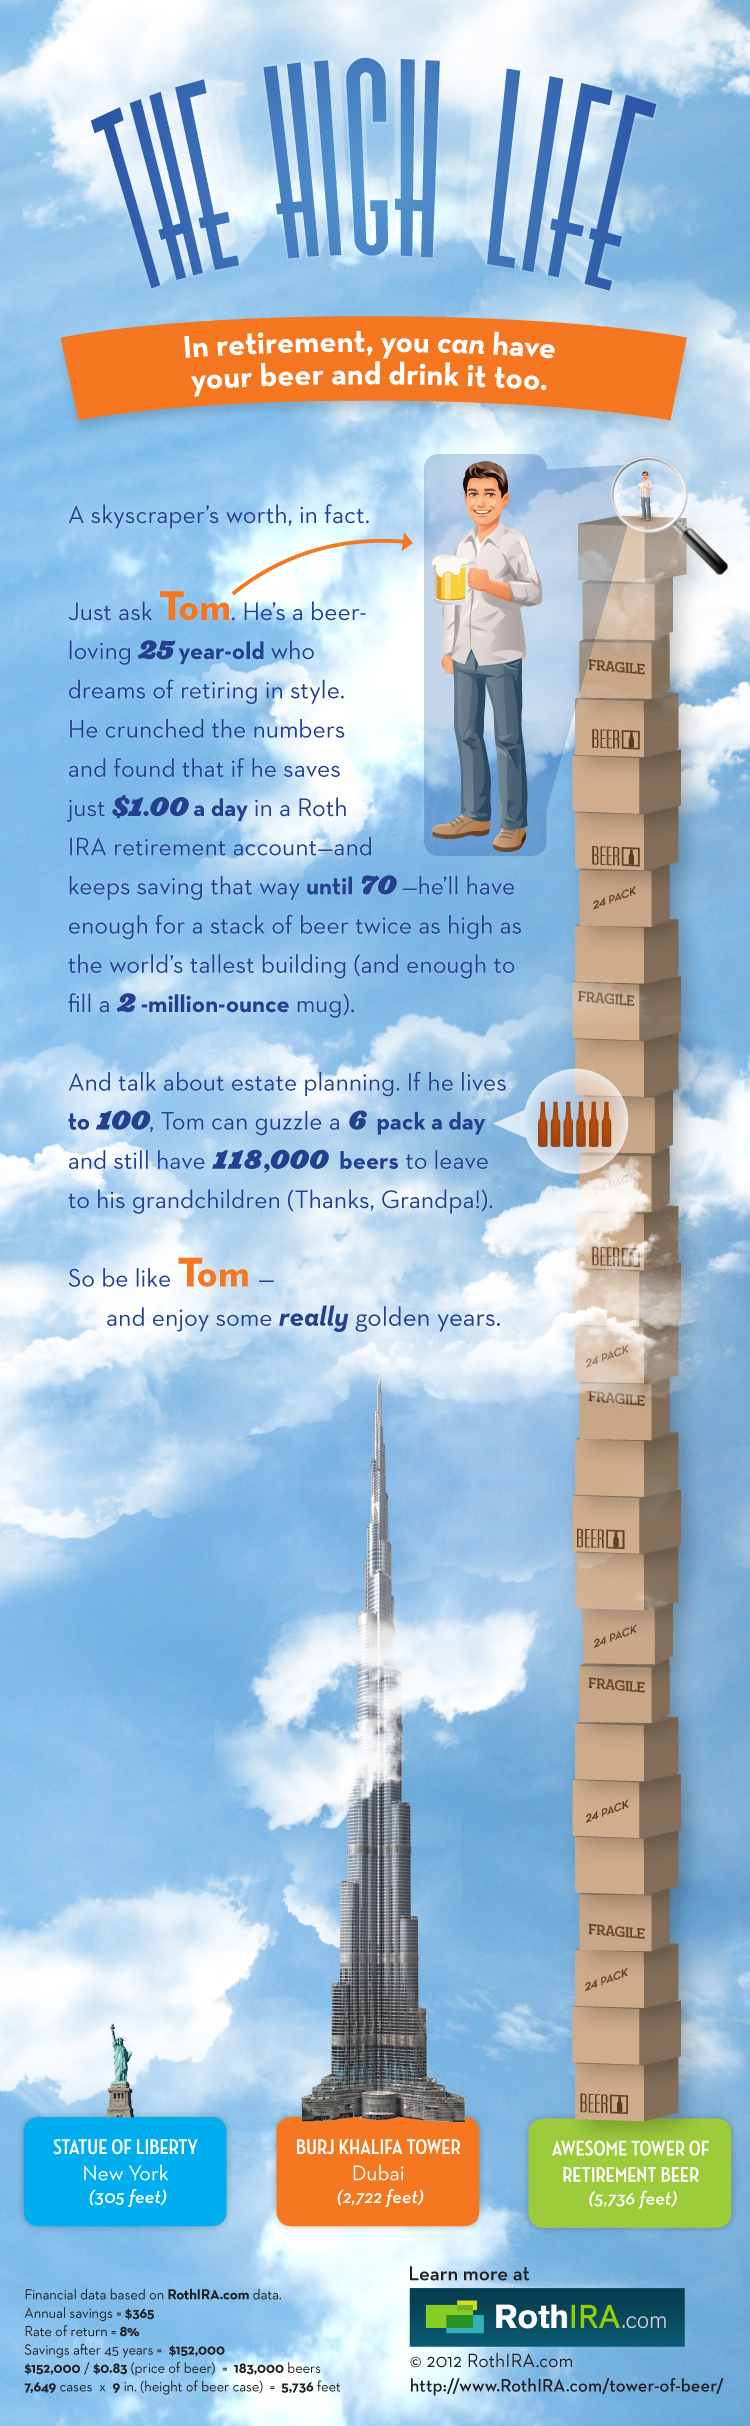 Roth IRA The Awesome Tower of Beer infographic